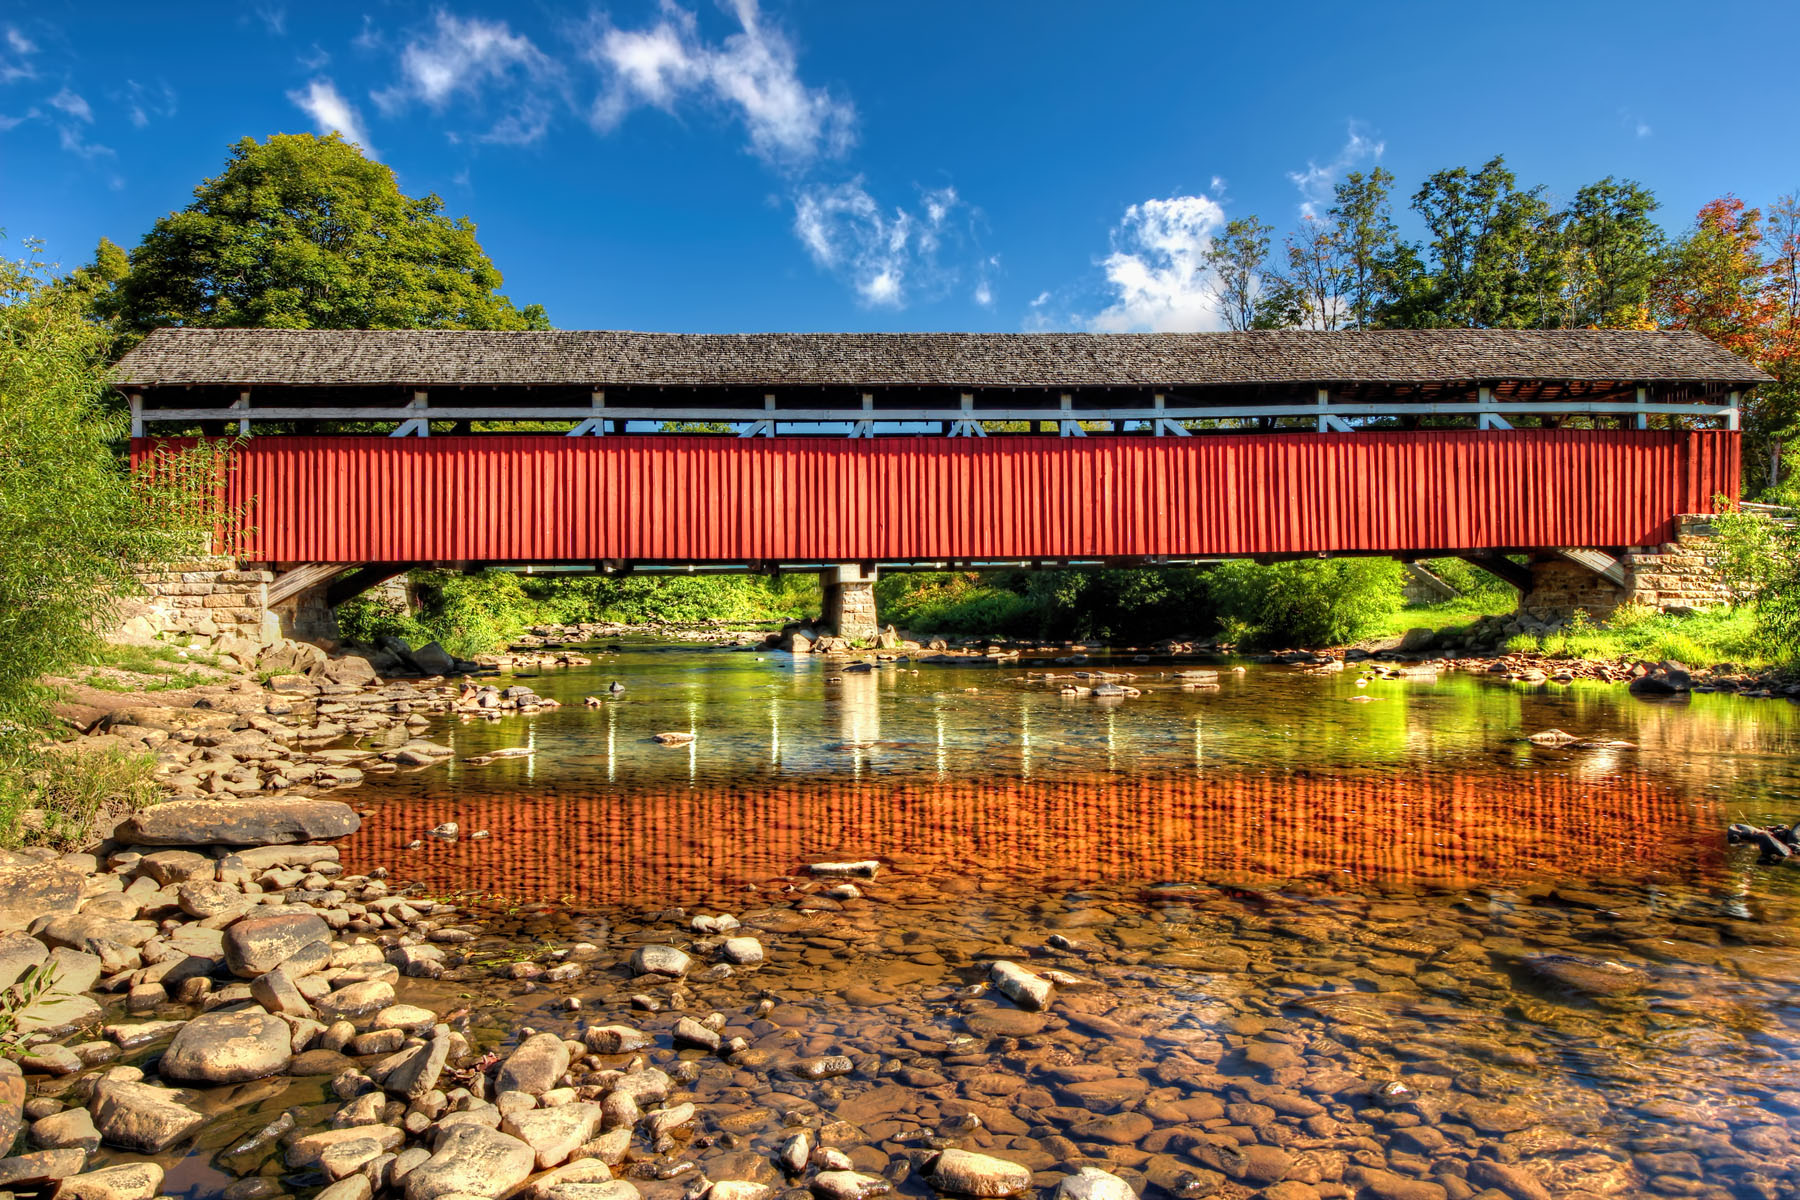 Kings Covered Bridge, Somerset County, PA. Photo taken by Pennsylvania landscape photographer Rusty Glessner on 9.7.2014.